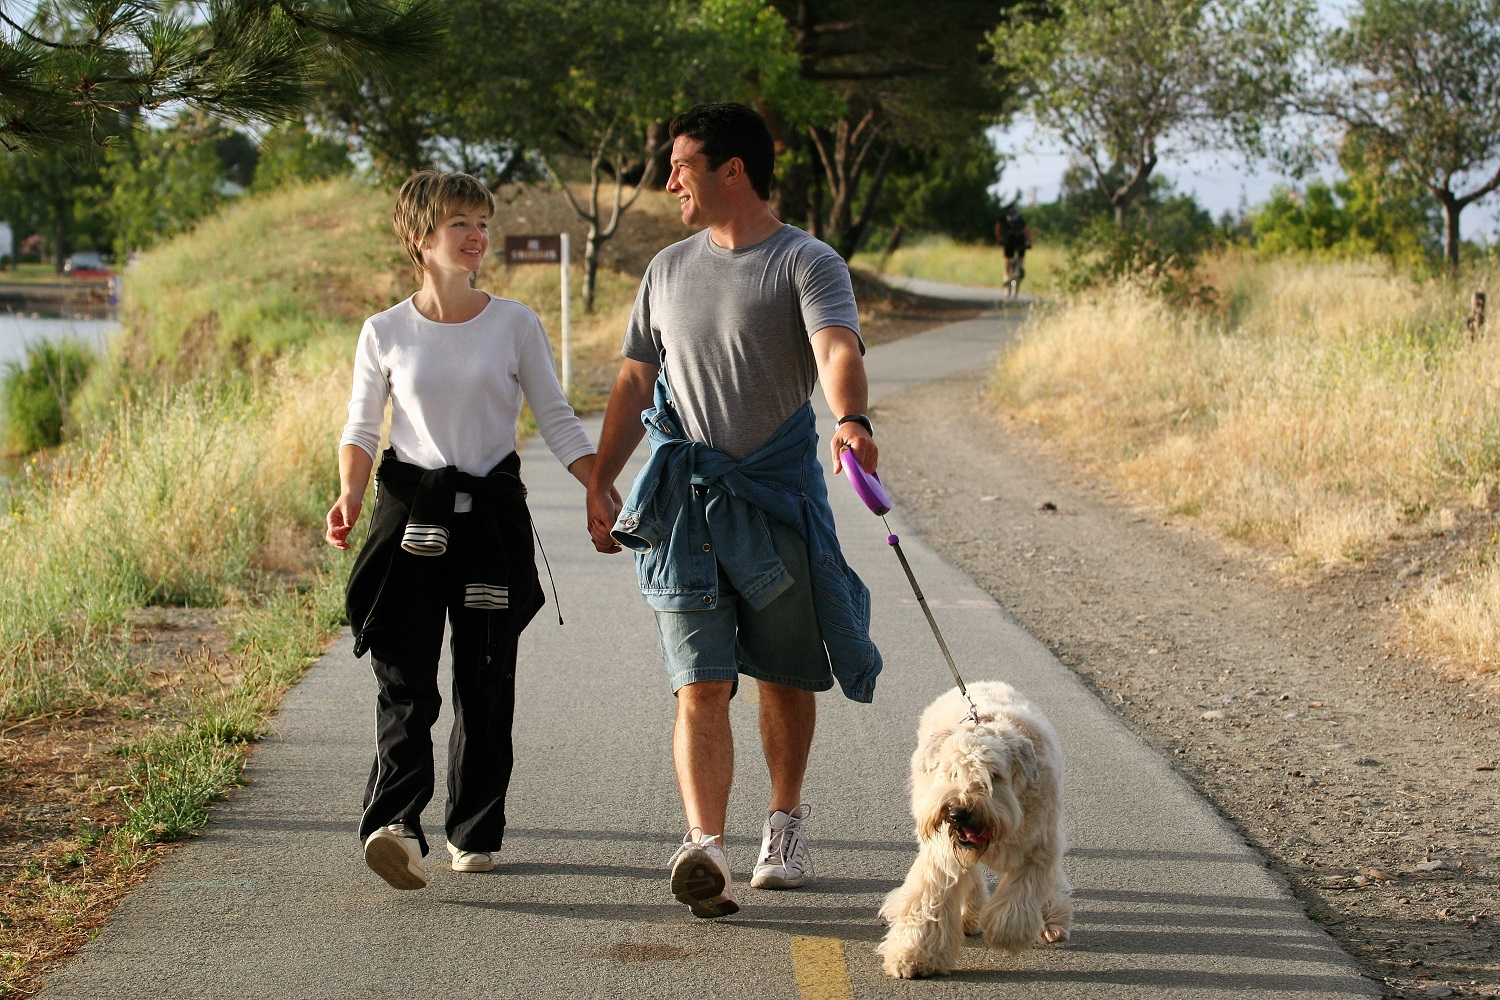 Couple relationship walking dog